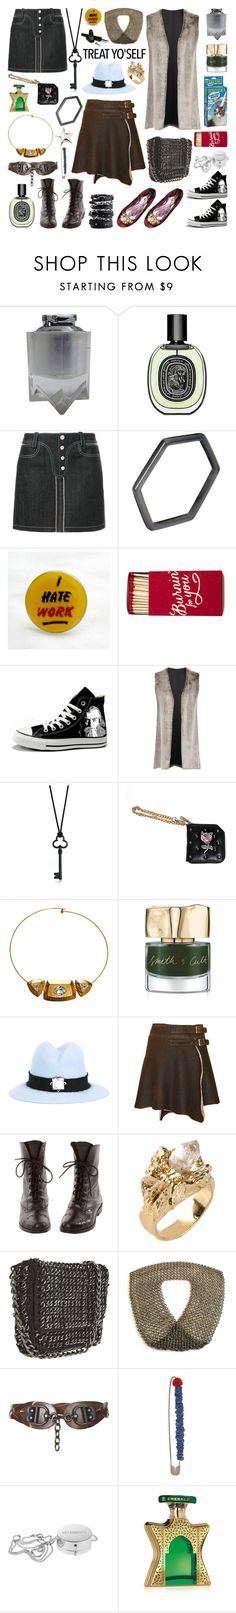 """It's Time to Treat Yo'Self!"" by deepwinter ❤ liked on Polyvore featuring Paco Rabanne, Tada & Toy, Converse, Elvi, Tiffany & Co., Luis Morais, Yves Saint Laurent, Smith & Cult, Eshvi and Tosca"